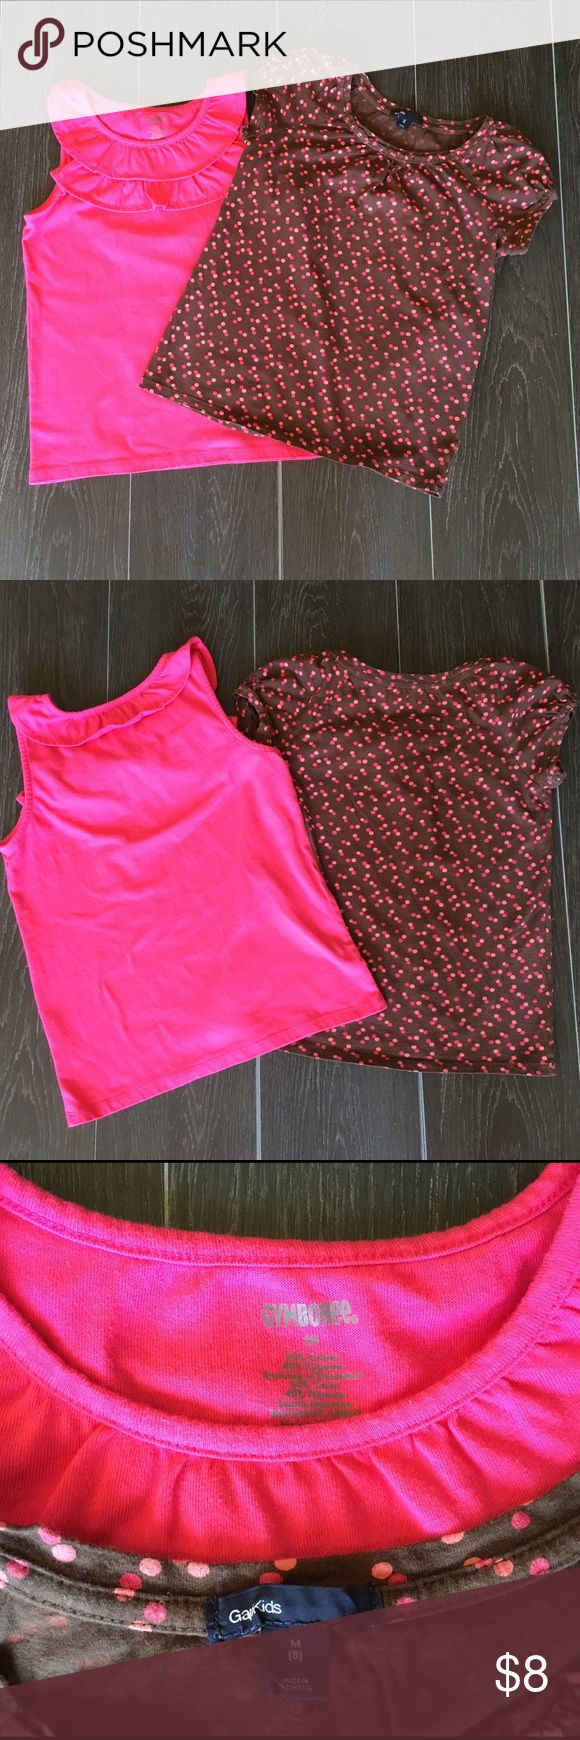 Gap and Gymboree Girls Shirts Gap and Gymboree Girls short sleeve shirts size 8.  Gymboree shirt is a pink tank with ruffles on top and labeled 10, but runs small and fits at an 8.  Gap shirt is short sleeves with pink polka dots size 8.  Super cute!  Small snag in the gap shirt on back (pictured).  Really not noticeable, other than that both pieces are in great used condition!  Smoke and pet free home!  20% off all bundles! Shirts & Tops